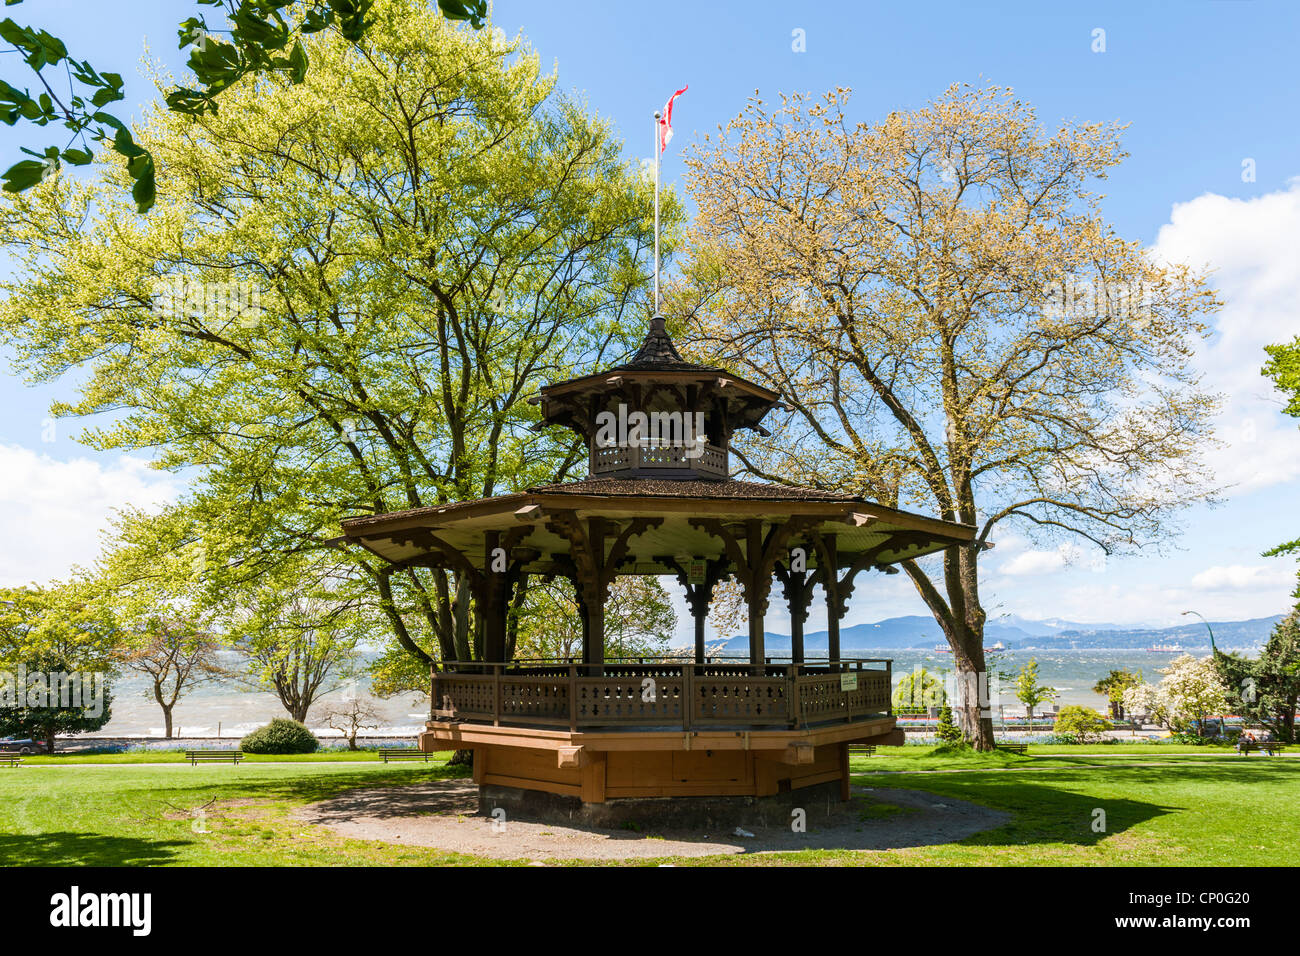 Haywood Bandstand, Alexandra Park, Vancouver - Stock Image